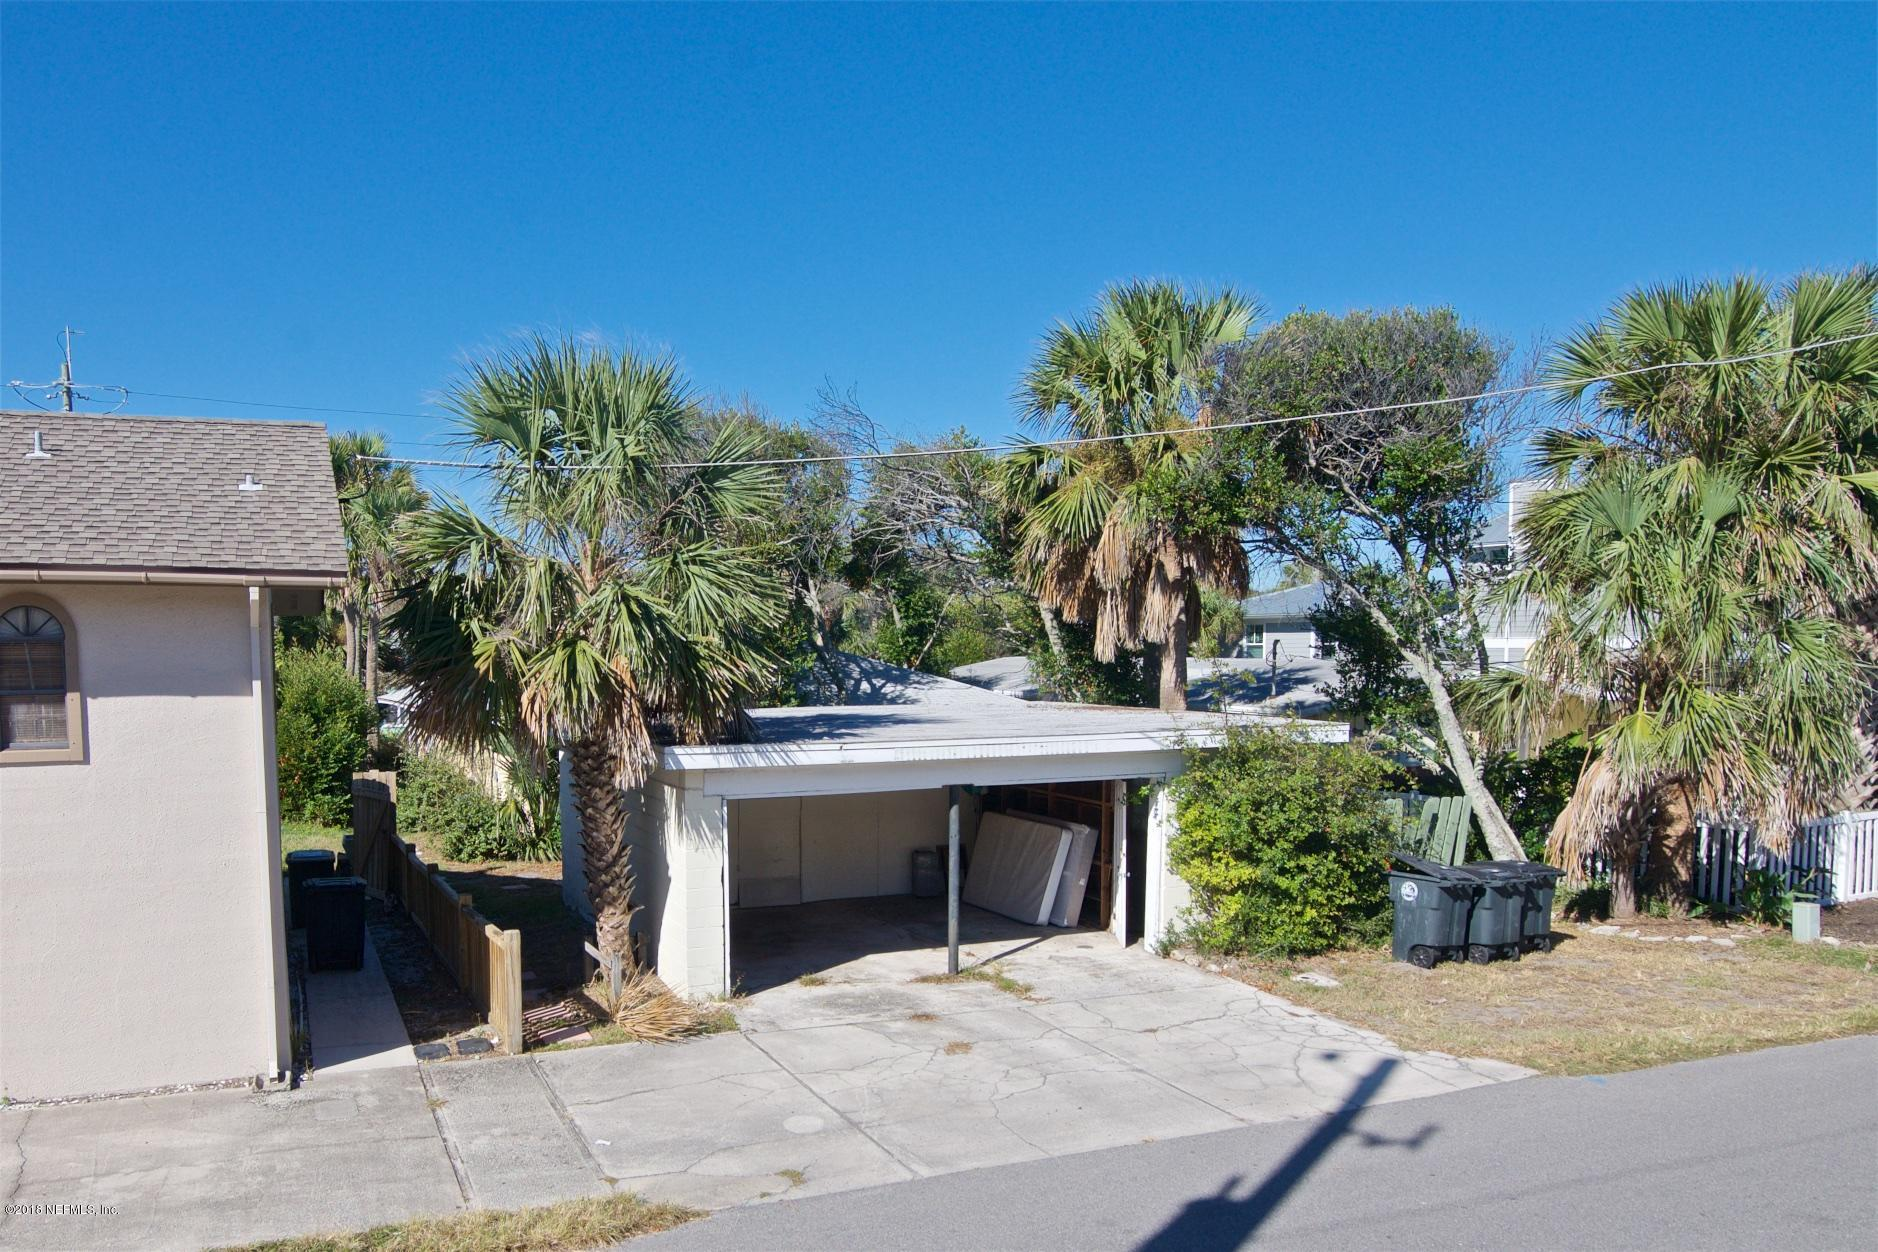 128 BEACH, ATLANTIC BEACH, FLORIDA 32233, 2 Bedrooms Bedrooms, ,2 BathroomsBathrooms,Residential - single family,For sale,BEACH,964703